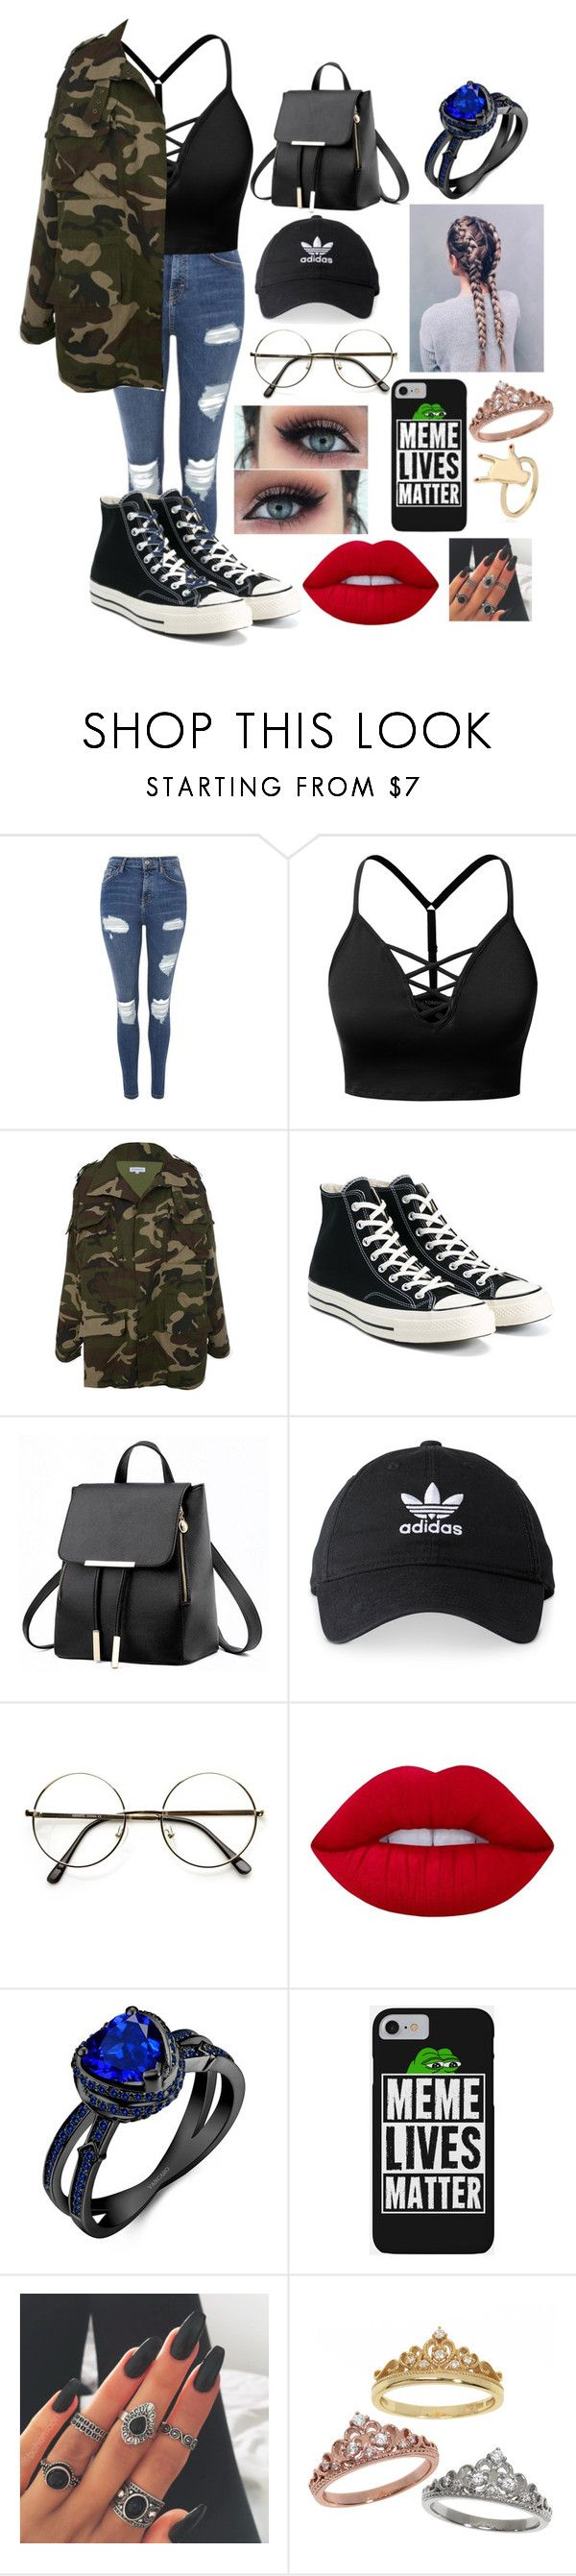 """"" by aesthetic-fashion on Polyvore featuring Topshop, J.TOMSON, Converse, adidas, Lime Crime and Eternally Haute"